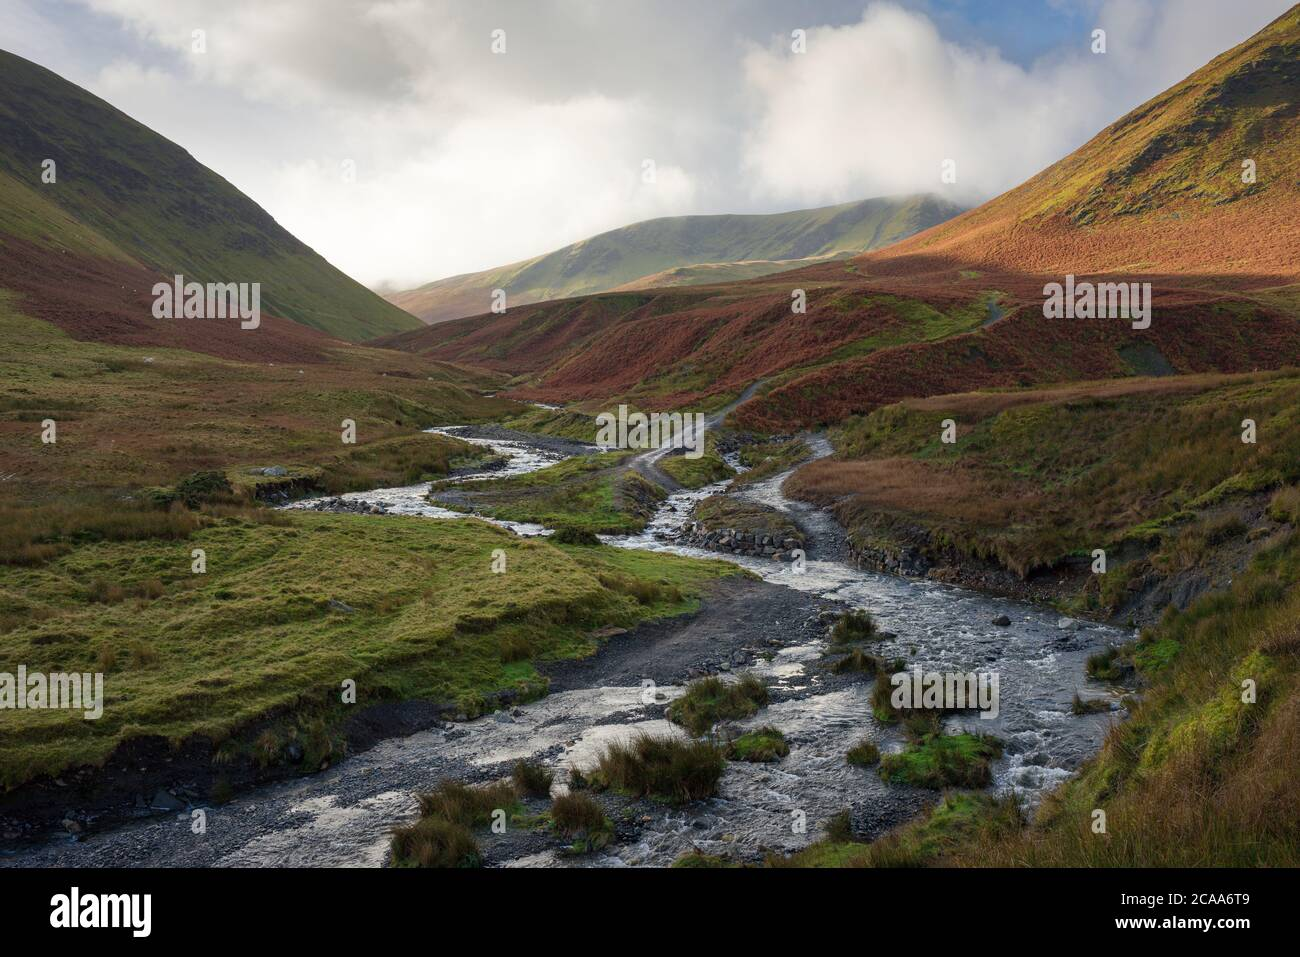 The confluence of the River Glenderamackin and Bullfell Beck with Bannderdale Crags beyond in the Lake District National Park, Cumbria, England. Stock Photo